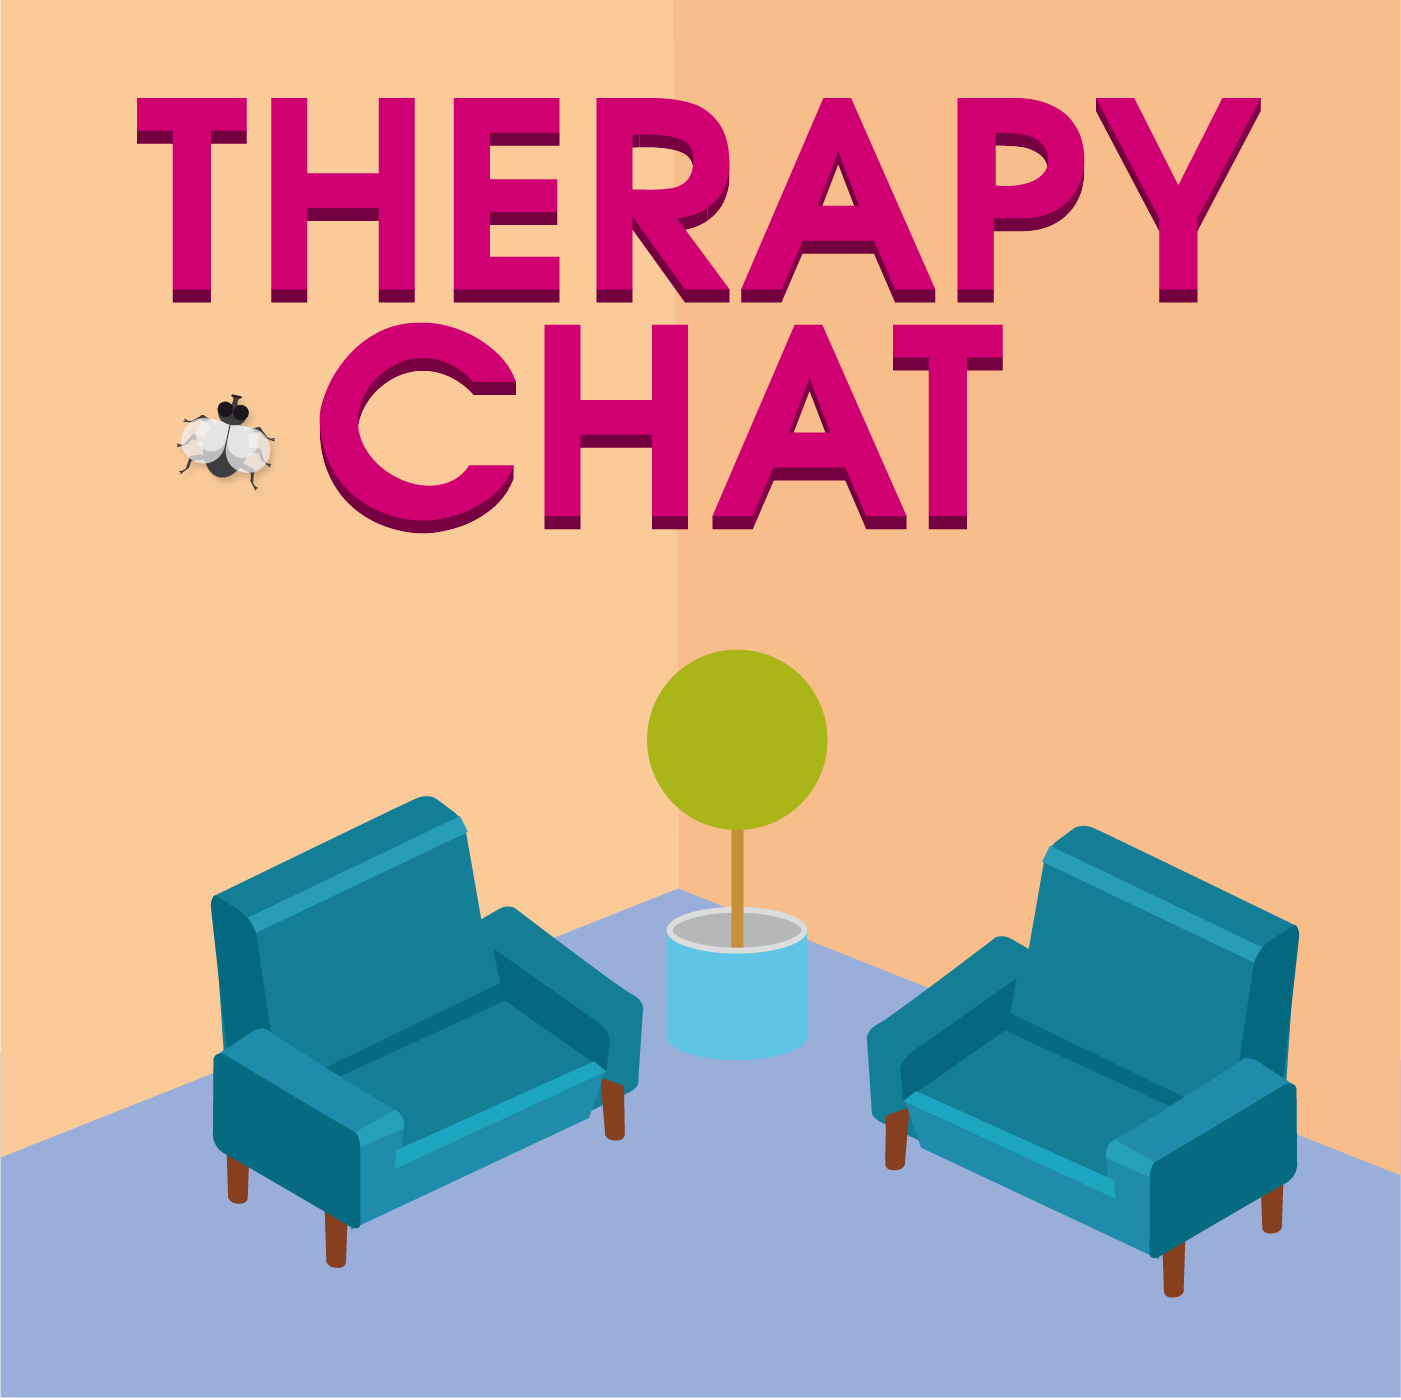 Click on the image above to listen to Therapy Chat!